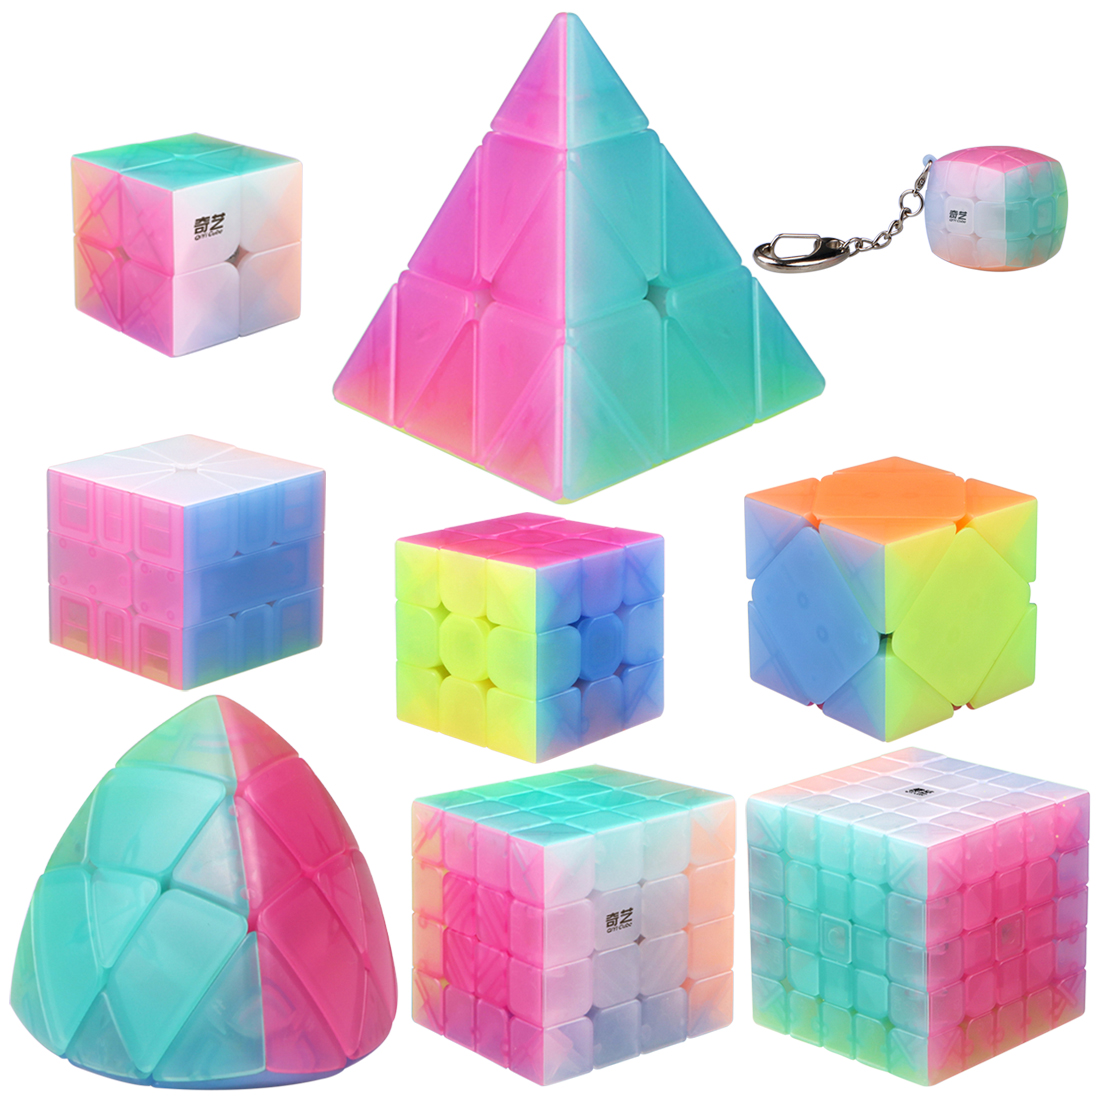 <font><b>QiYi</b></font> Jelly Cube Set Including Pyramid SQ-1 Mastermorphix Qidi <font><b>S</b></font> 2x2 Warrior W 3x3 <font><b>QiYuan</b></font> <font><b>S</b></font> <font><b>4x4</b></font> Qizheng <font><b>S</b></font> 5x5 Magic Cube Kits image